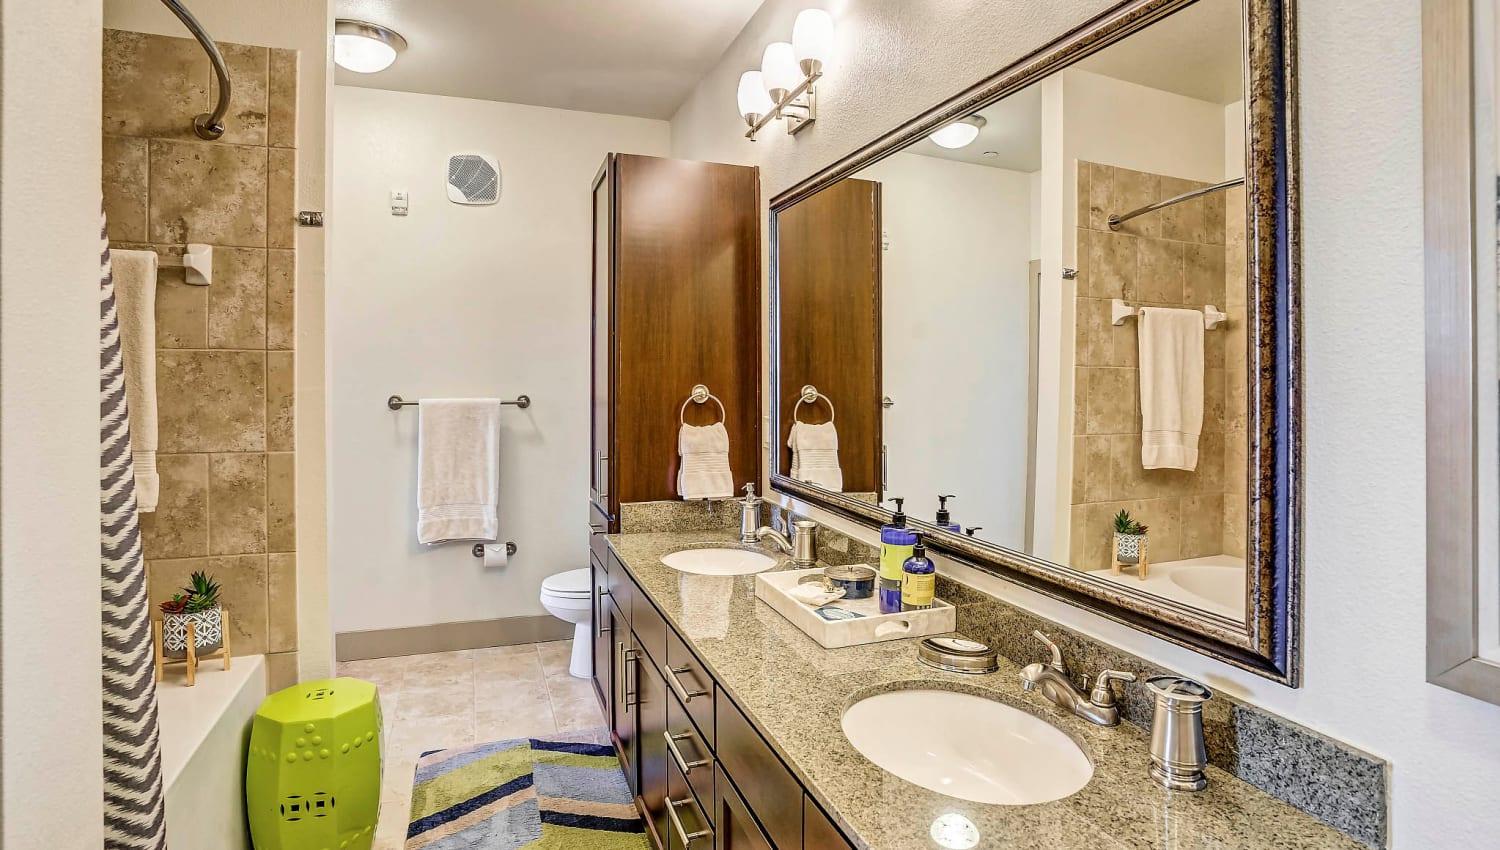 Custom tiled shower and a granite countertop in a model home's master bathroom at Sundance Creek in Midland, Texas